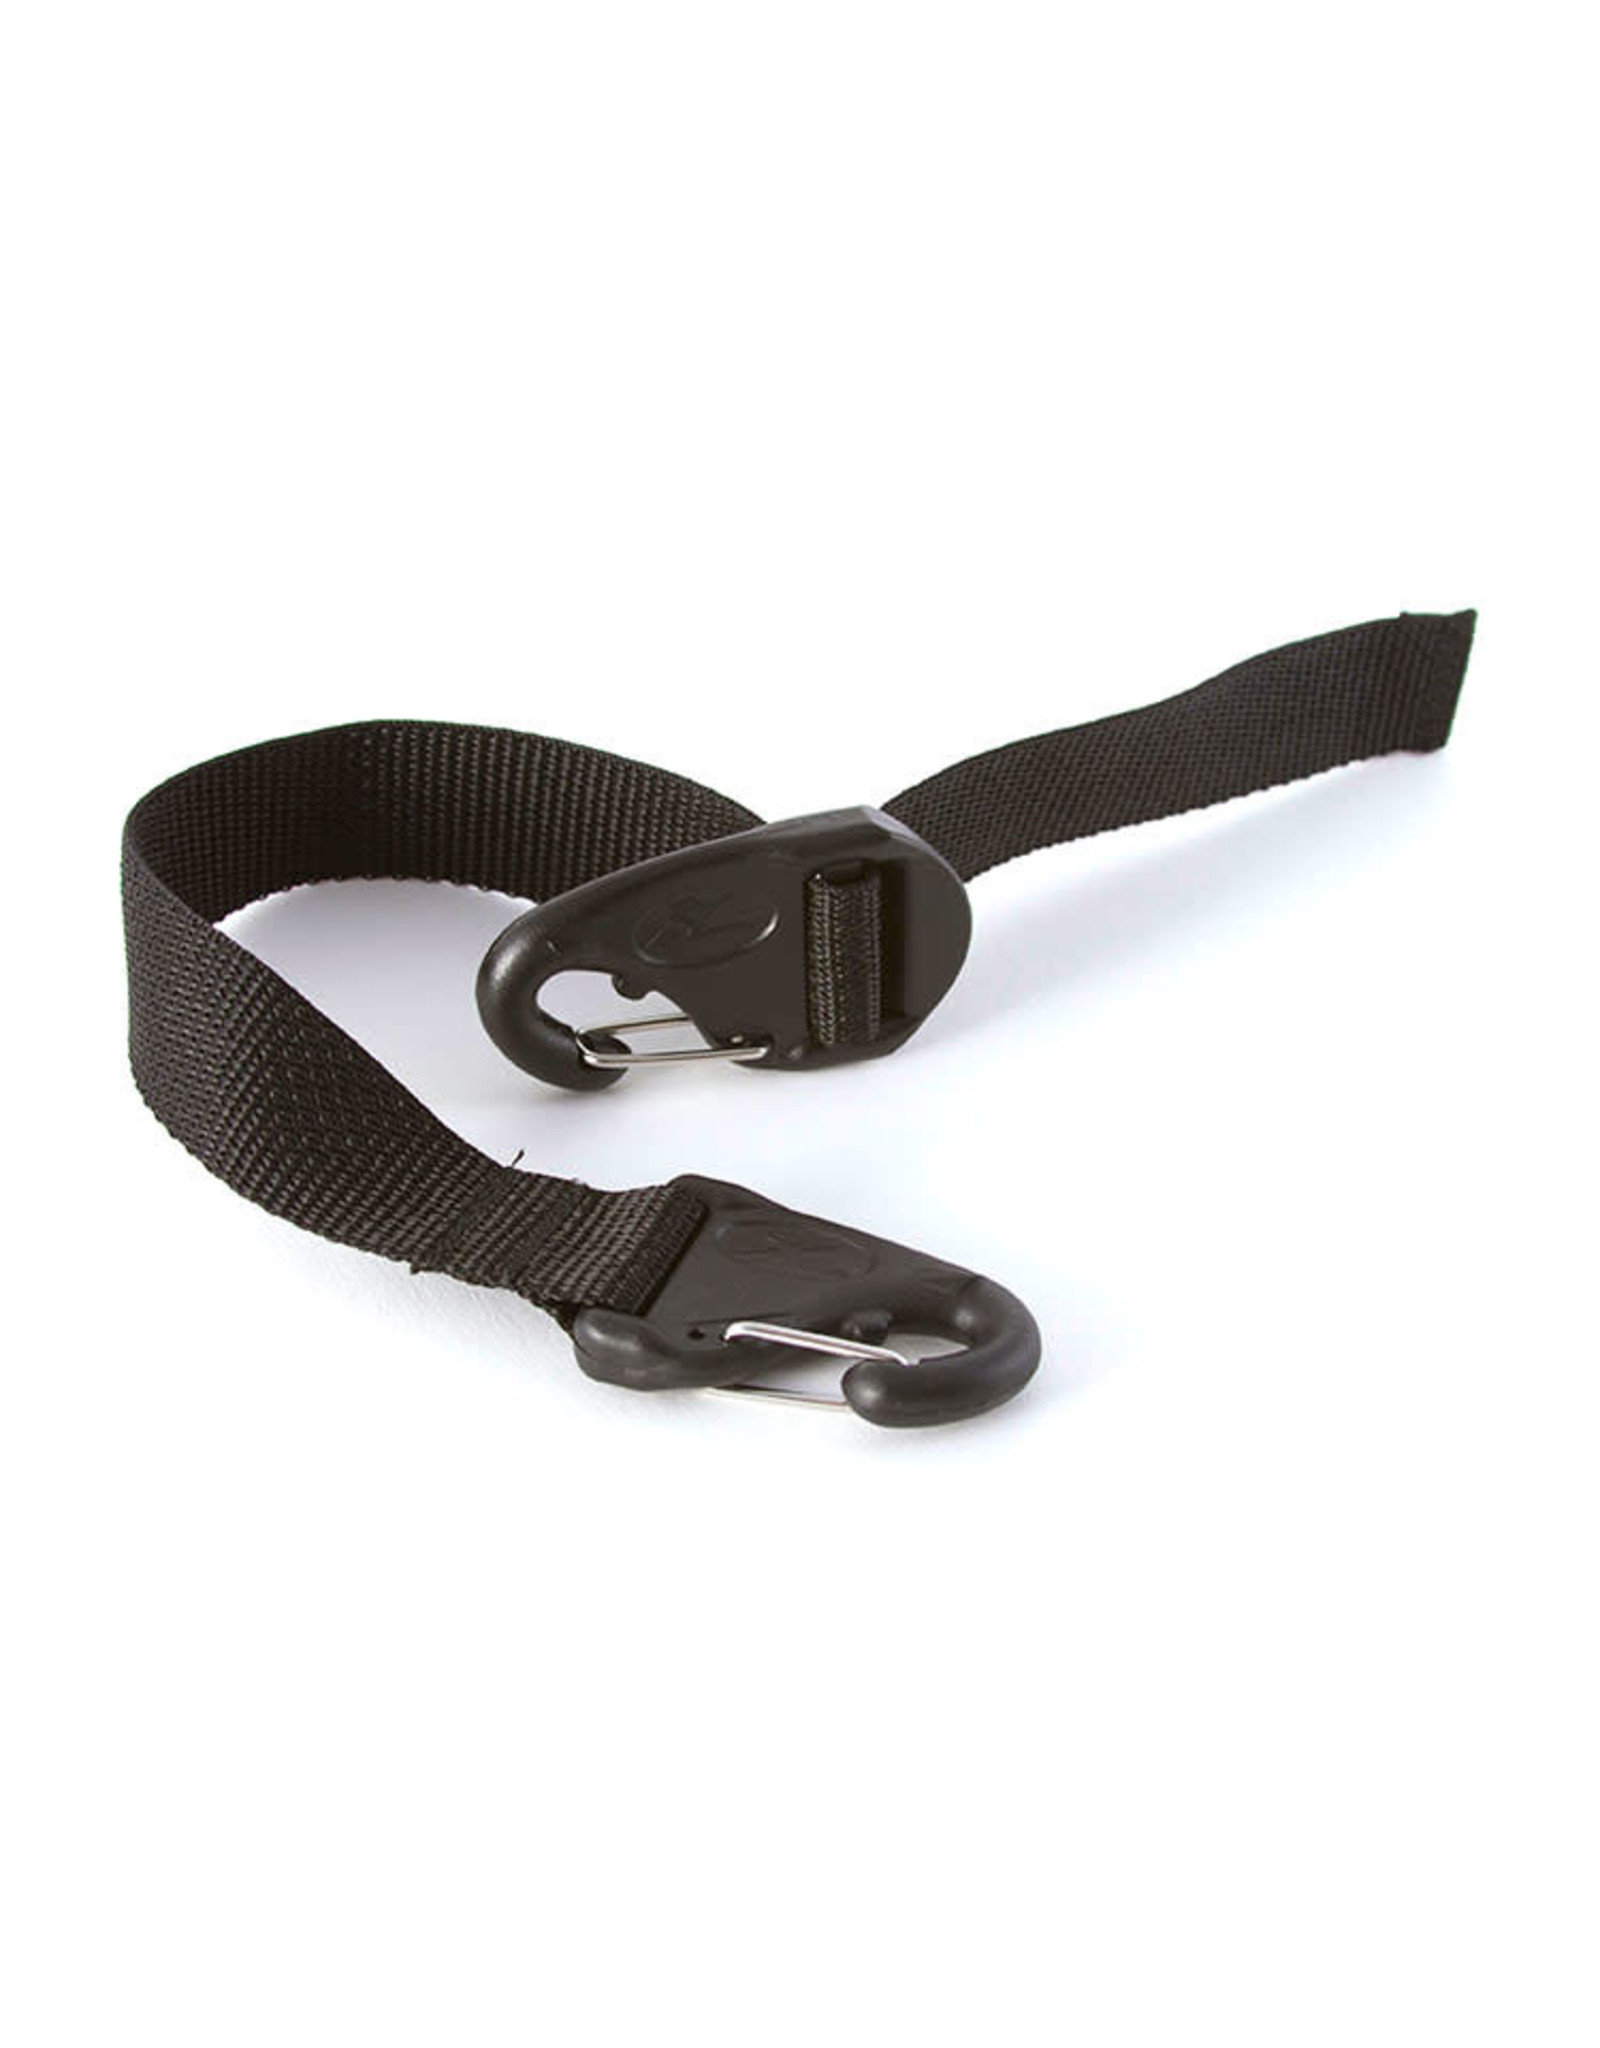 Hobie Hobie Acc. H-Crate Courroie - H-Crate Tie Down Strap Assy